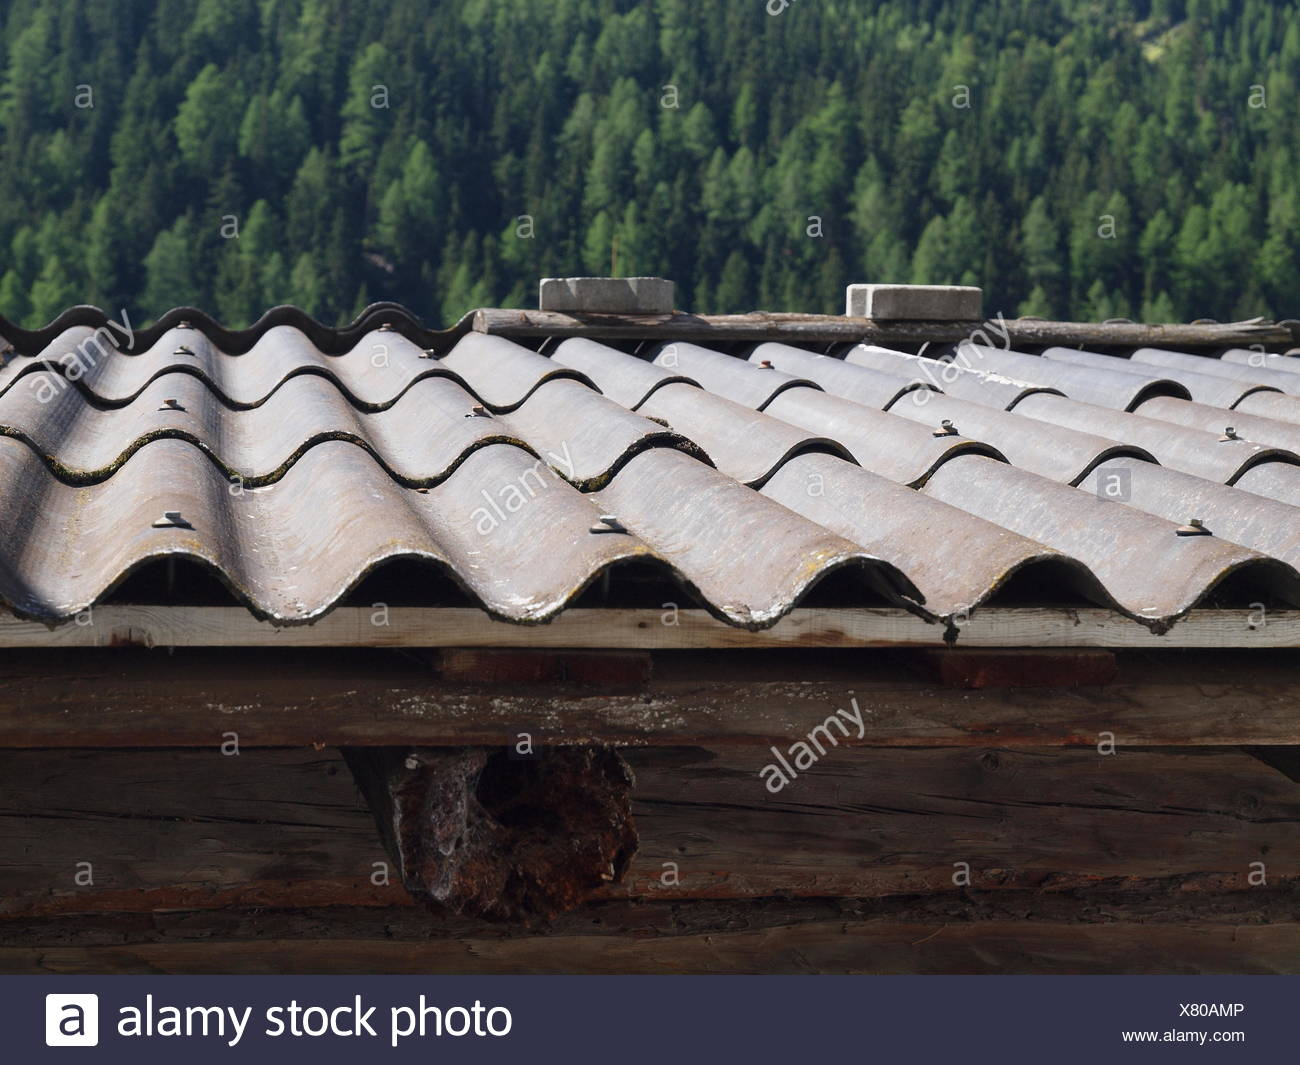 Asbestplatten Stock Photos Asbestplatten Stock Images Alamy